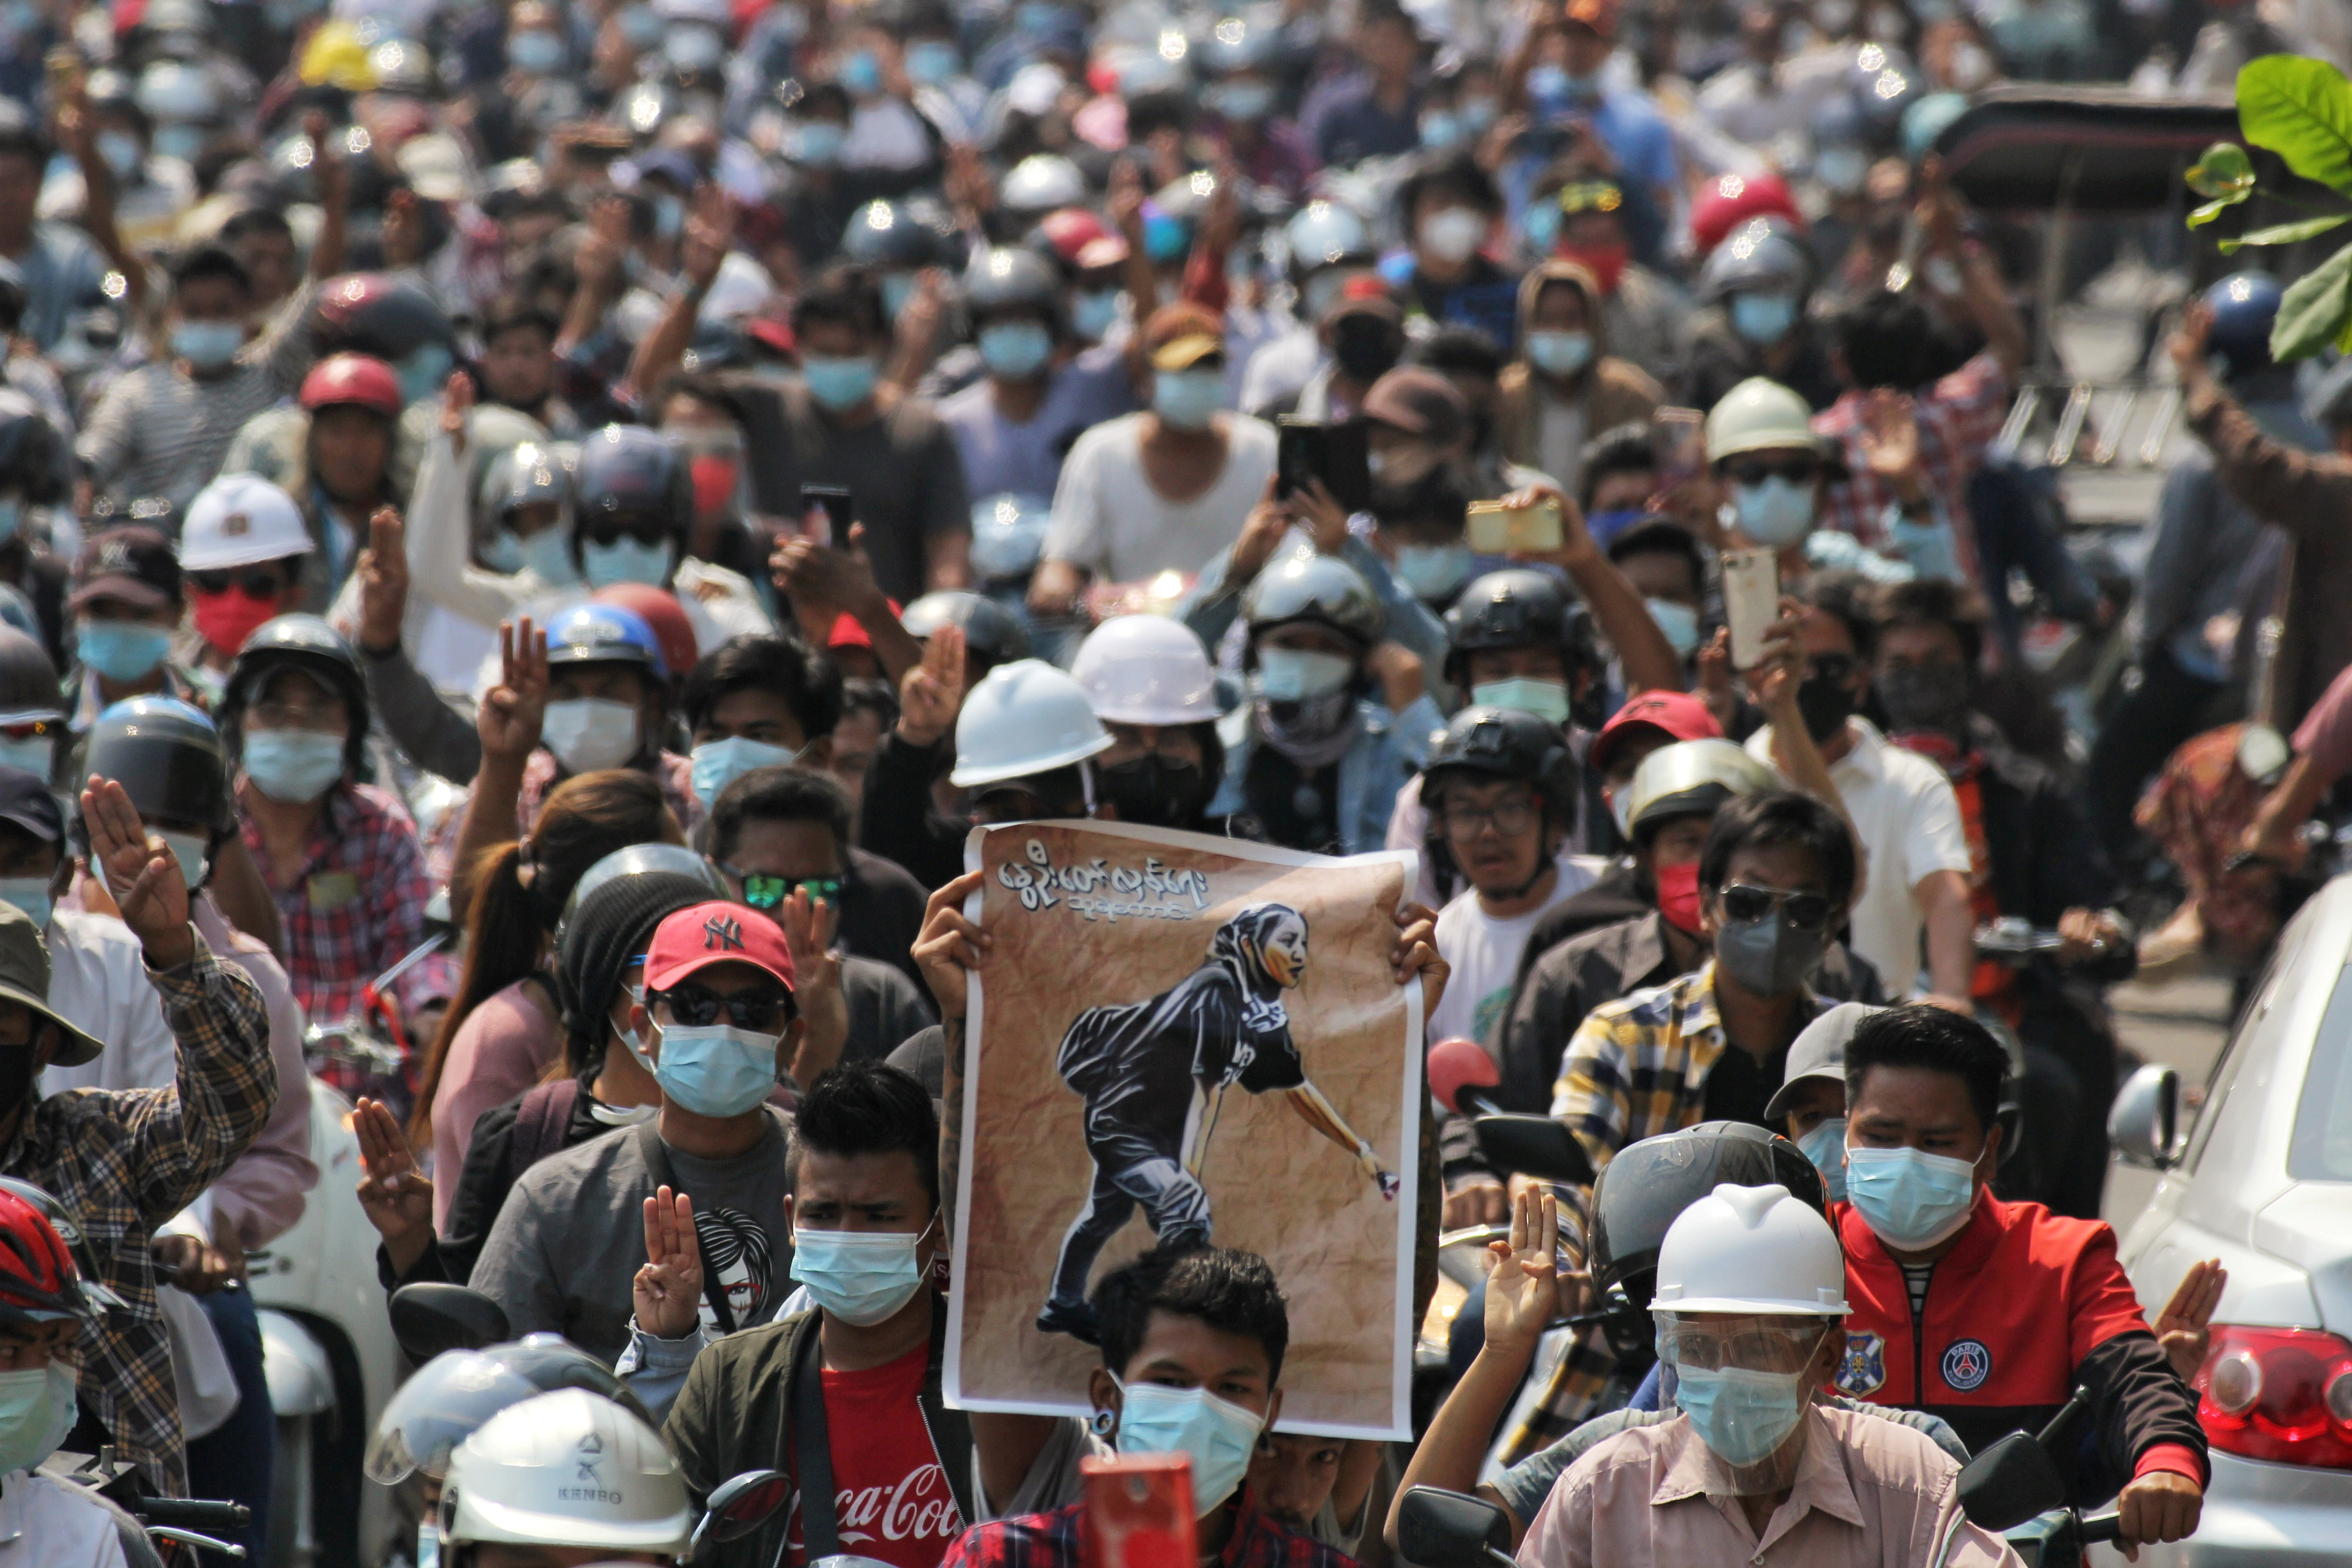 People attend the funeral of Angel a 19-year-old protester also known as Kyal Sin who was shot in the head as Myanmar forces opened fire  to disperse an anti-coup demonstration in Mandalay, Myanmar, March 4, 2021. REUTERS/Stringer